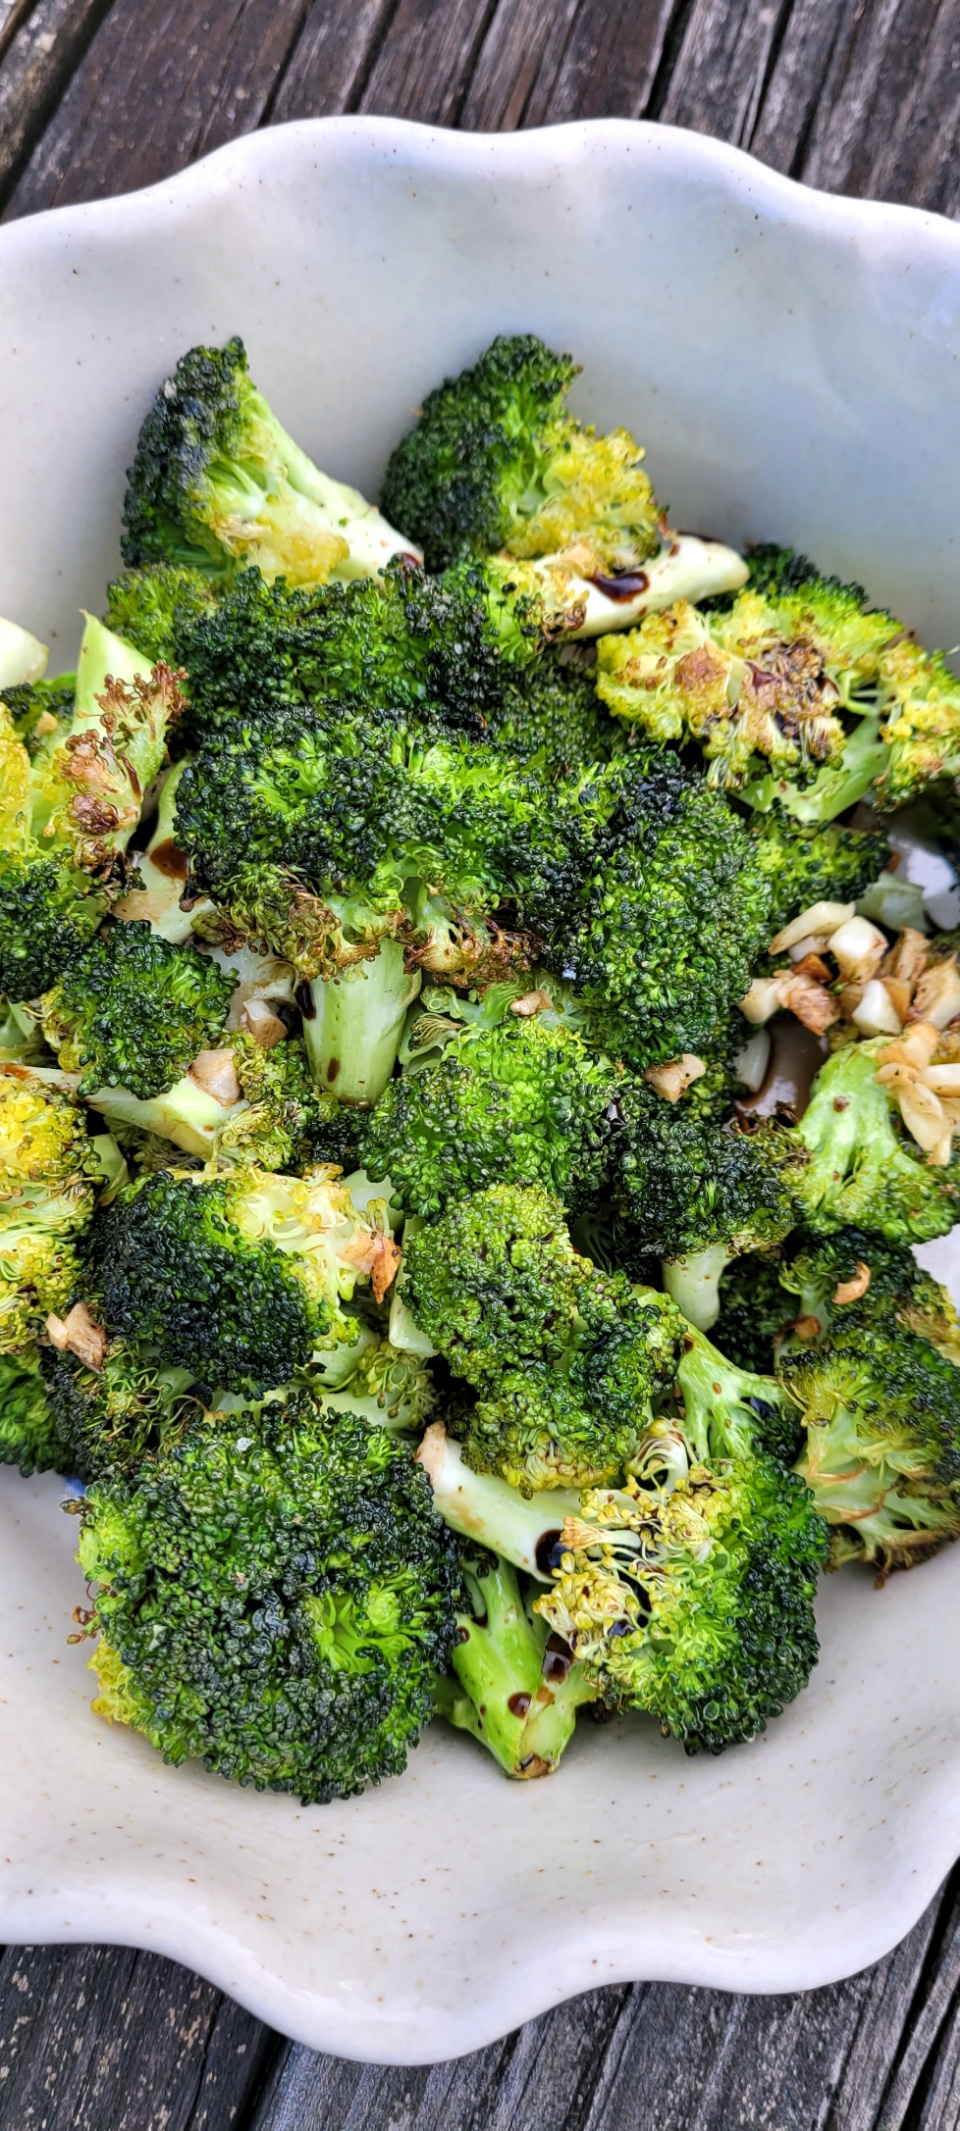 Roasted Broccoli with Garlic and Balsamic Vinegar